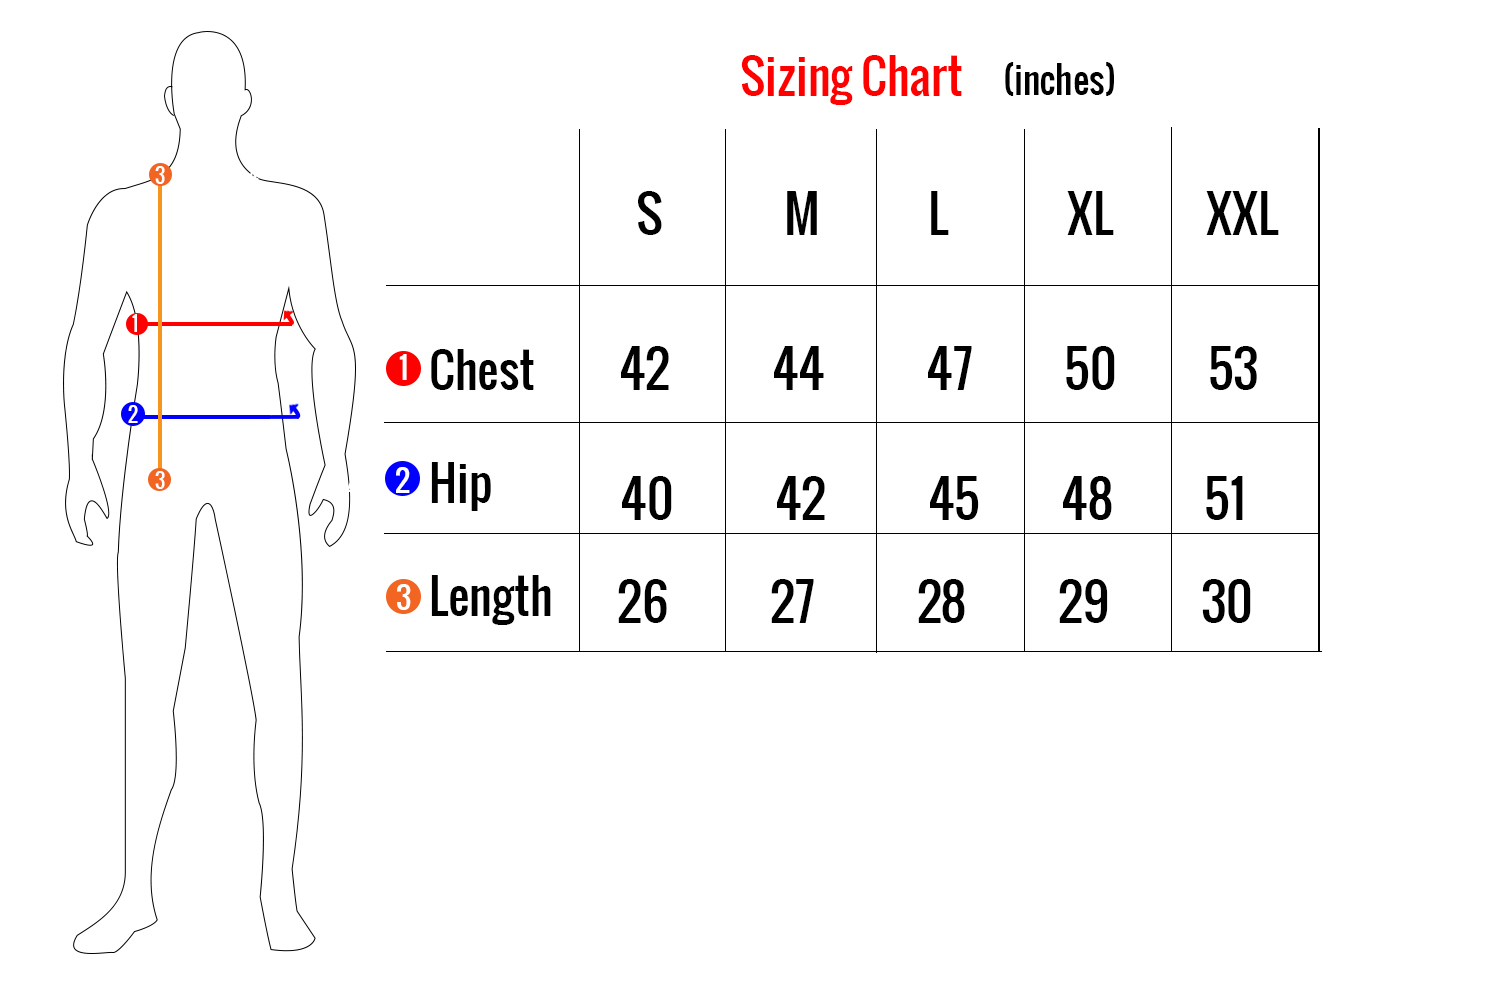 Men's  Heated Insulated Jacket Sizing Chart BH1670